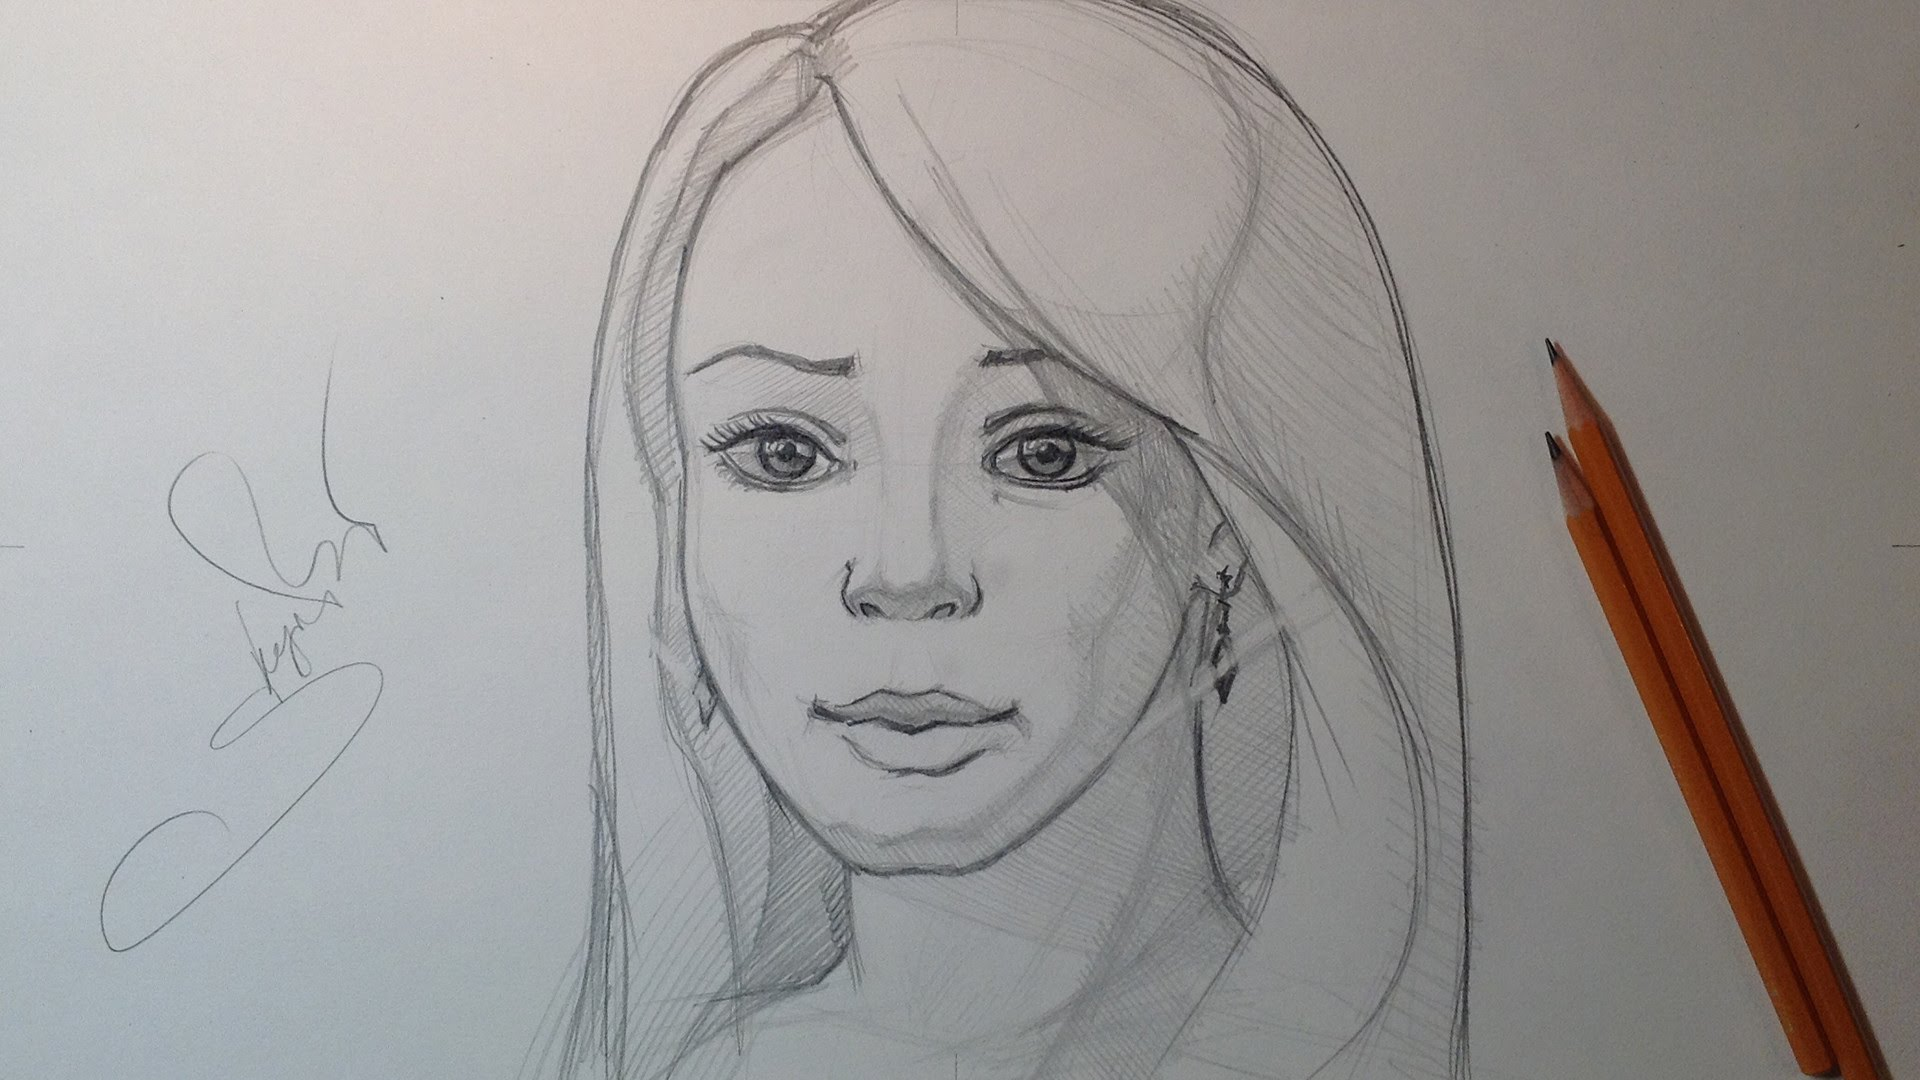 Drawn women pencil sketch / Portrait Drawing  /